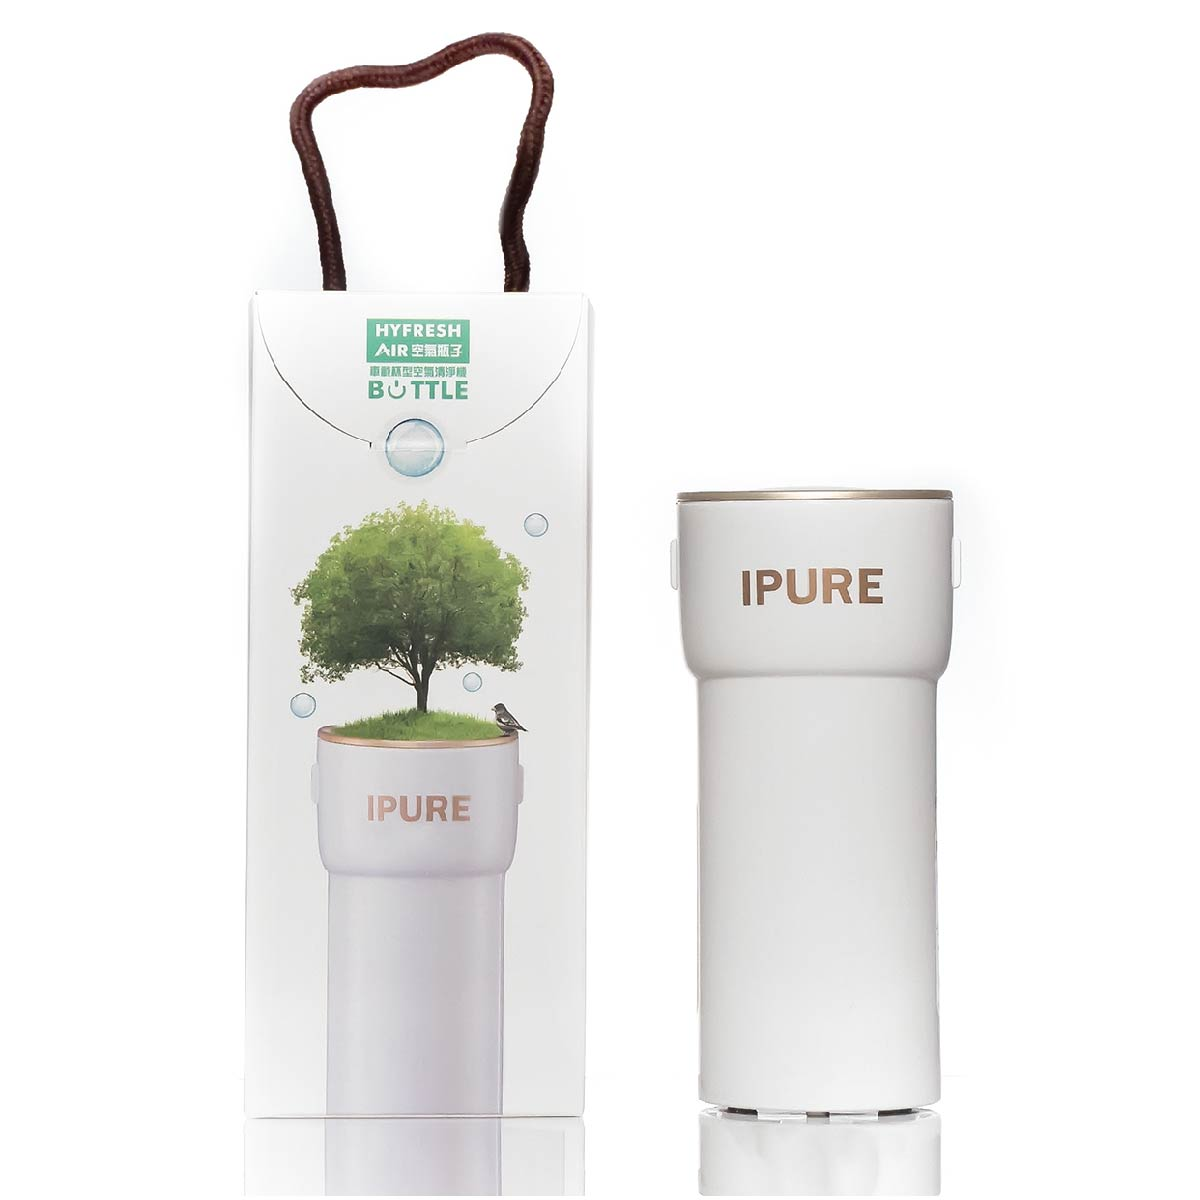 IPure Air Purifier with TRUE HEPA Filter